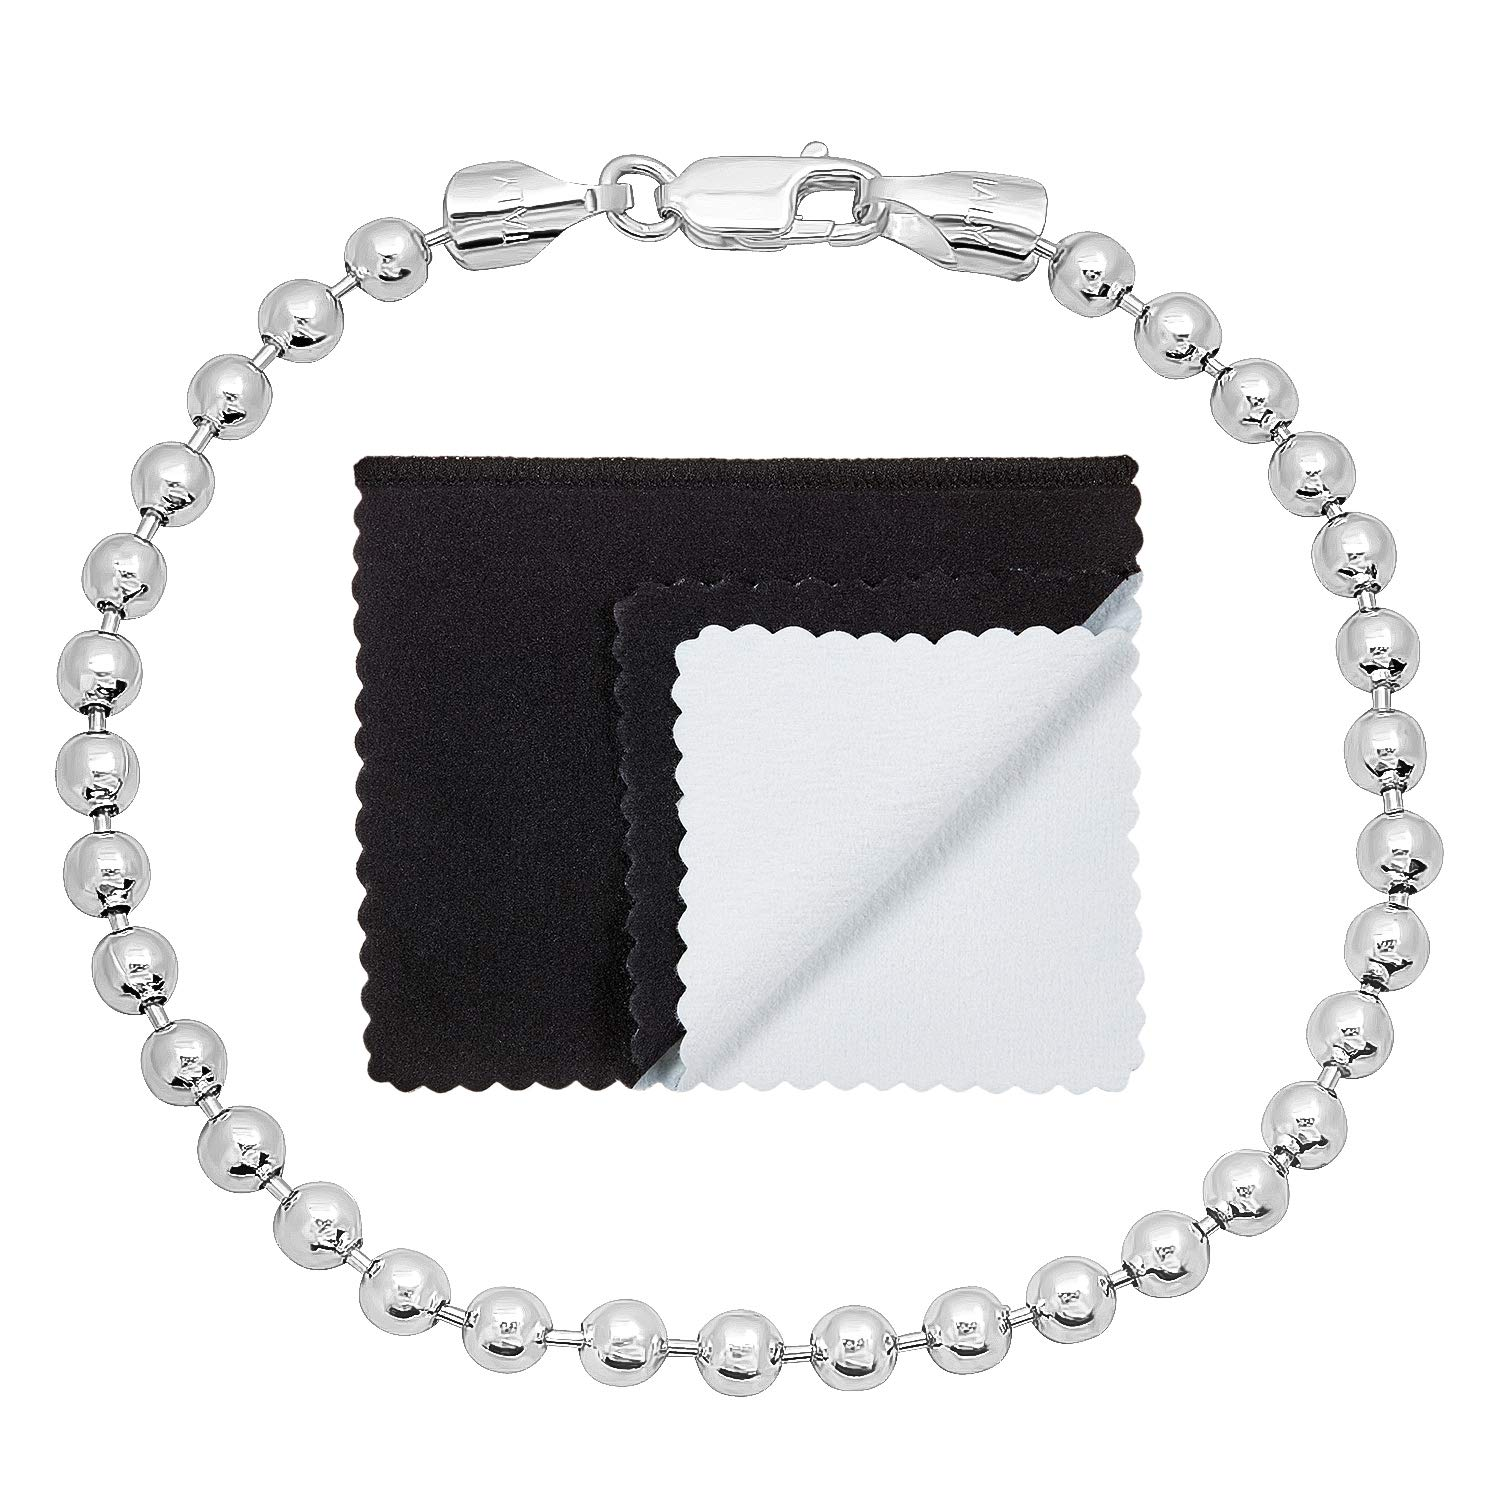 4mm Real 925 Sterling Silver Nickel-Free Military Ball Bracelet, 7'' - Made in Italy + Cleaning Cloth